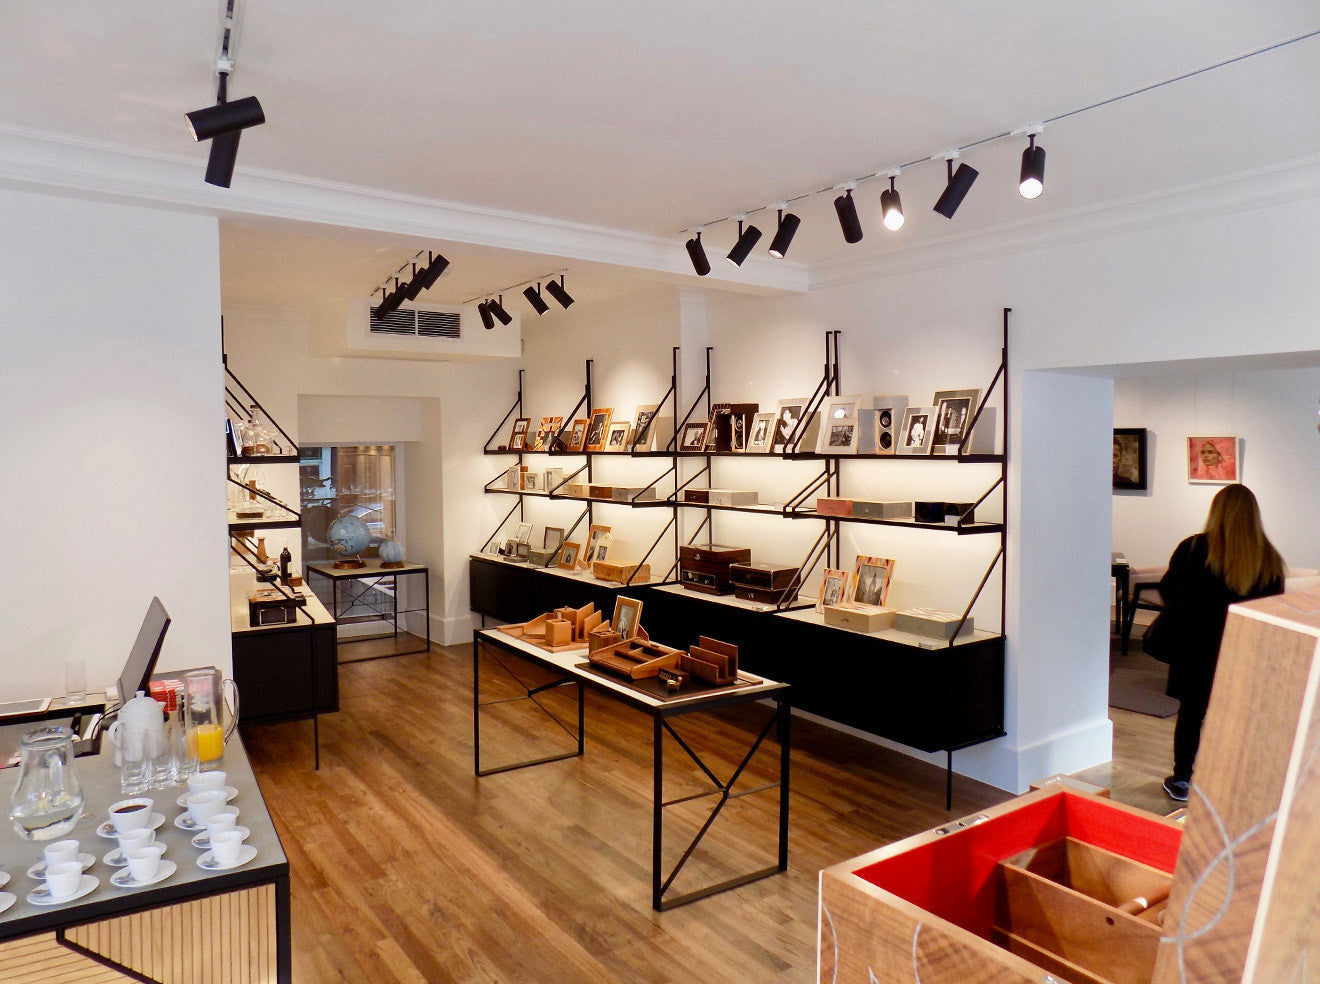 LINLEY reopens its newly refurbished store space on Pimlico Road